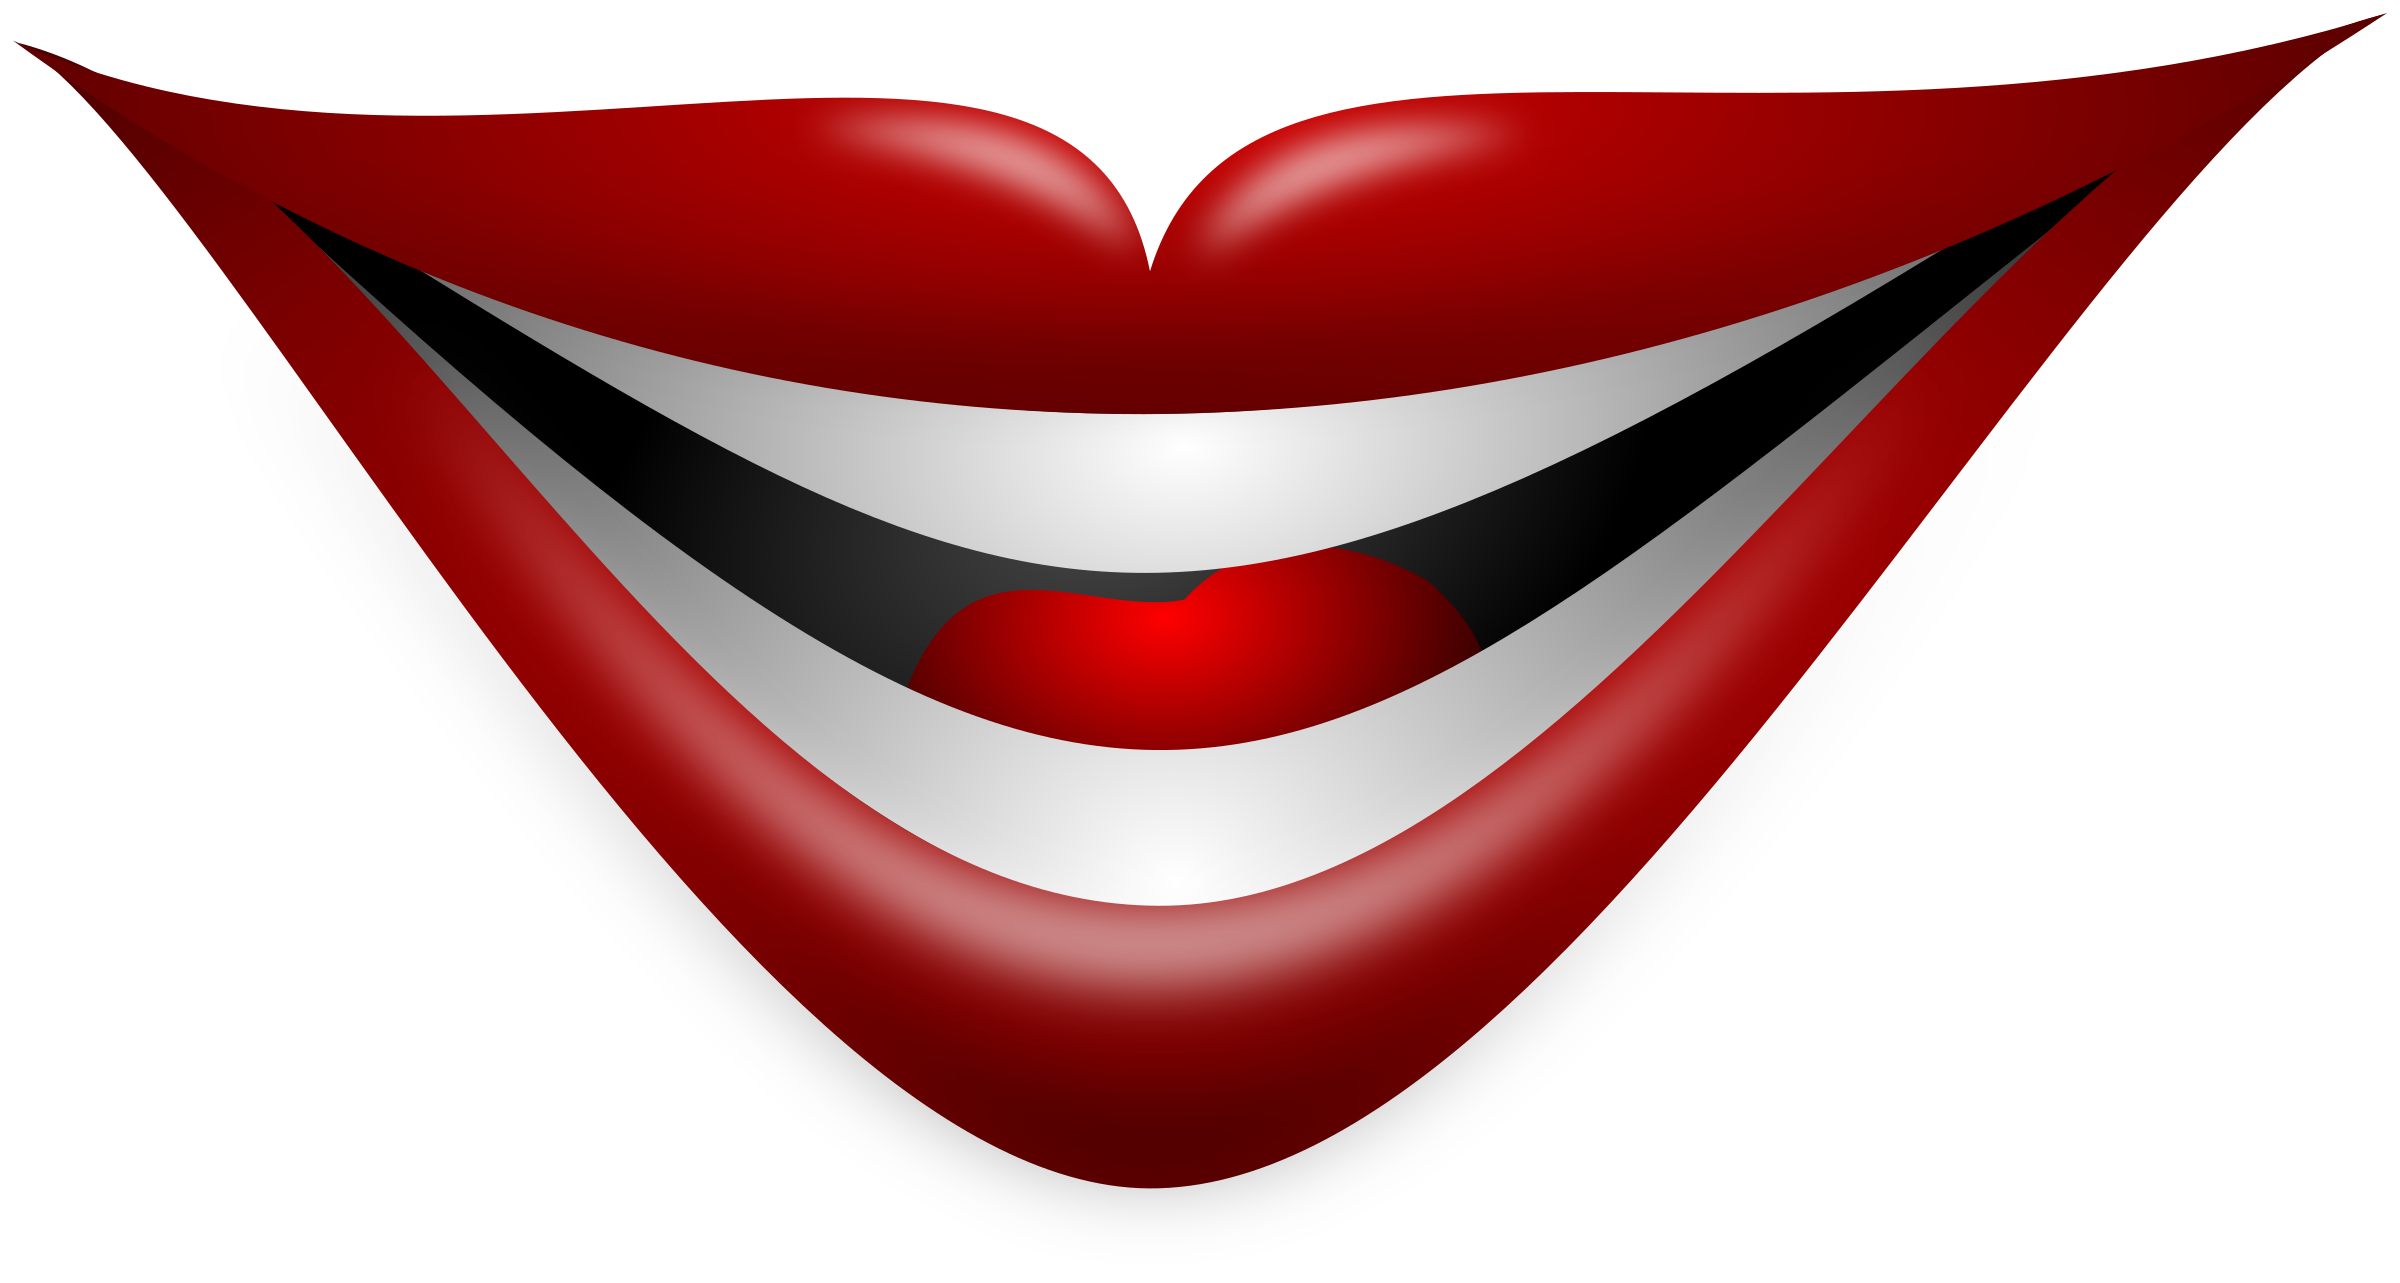 Smile smiling mouth clipart